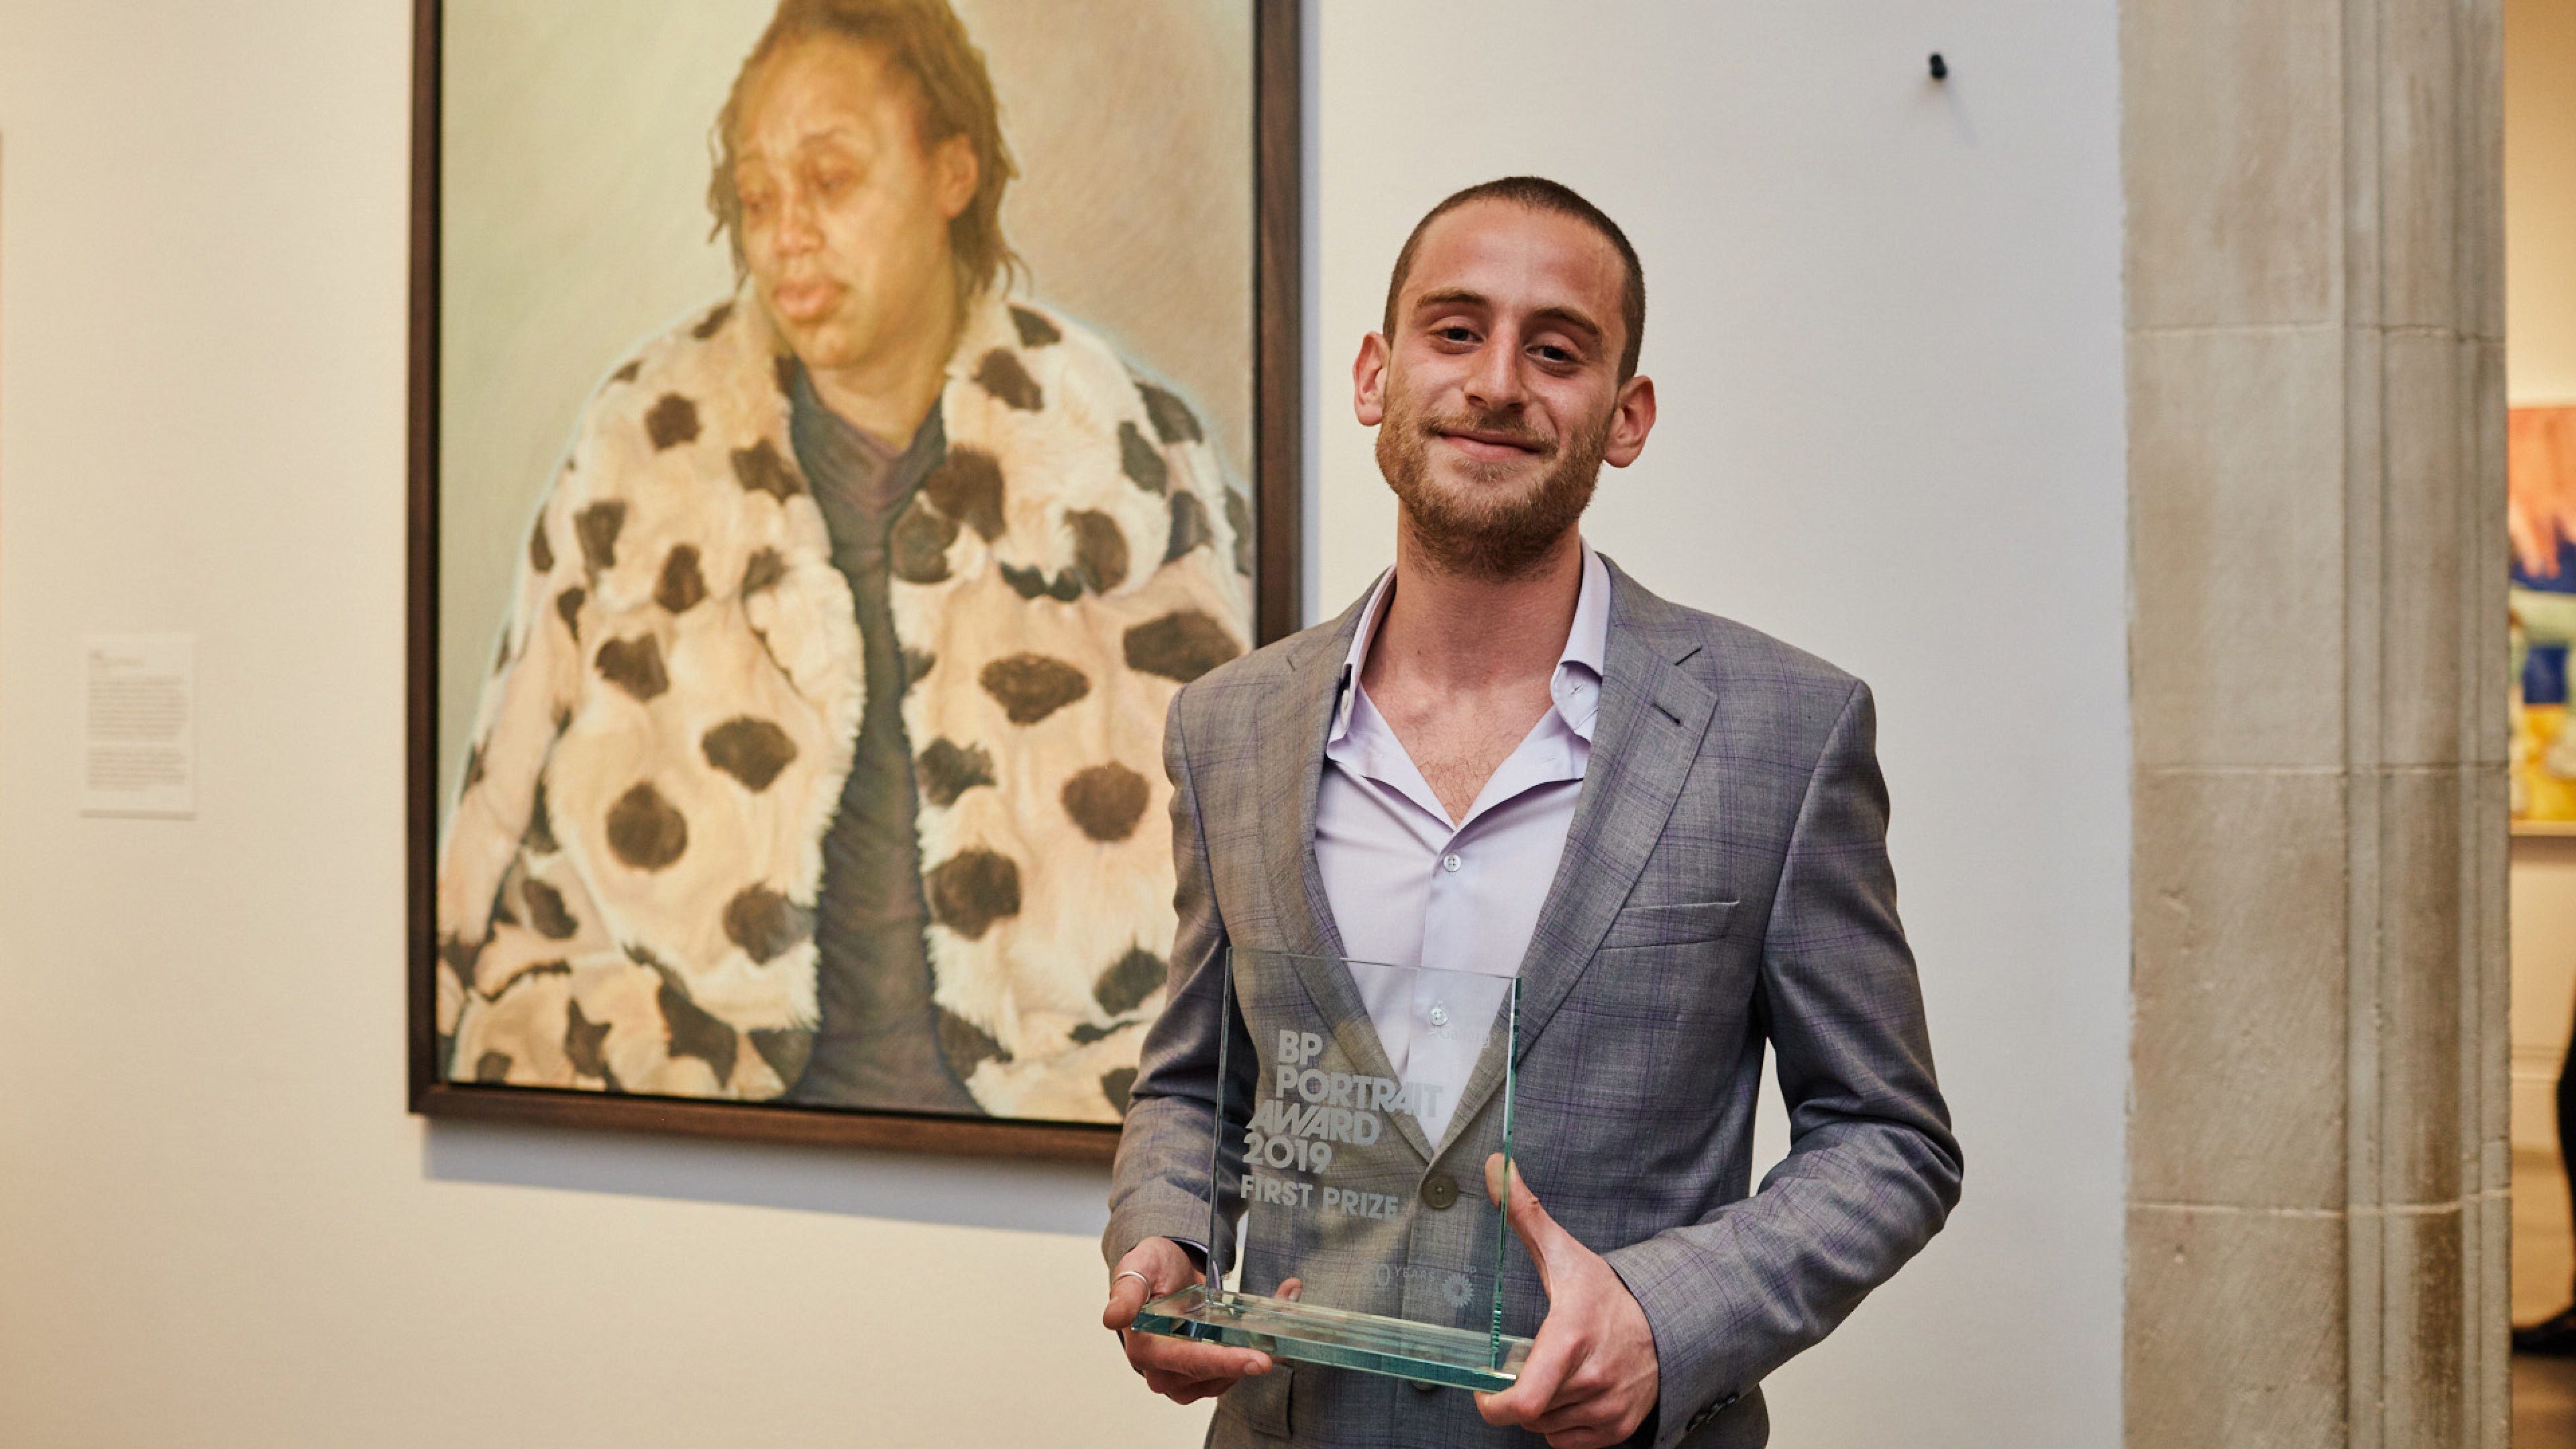 Artist Charlie Schaffer, winner of the BP portrait award 2019 in front of his painting, Imara in her Winter Coat